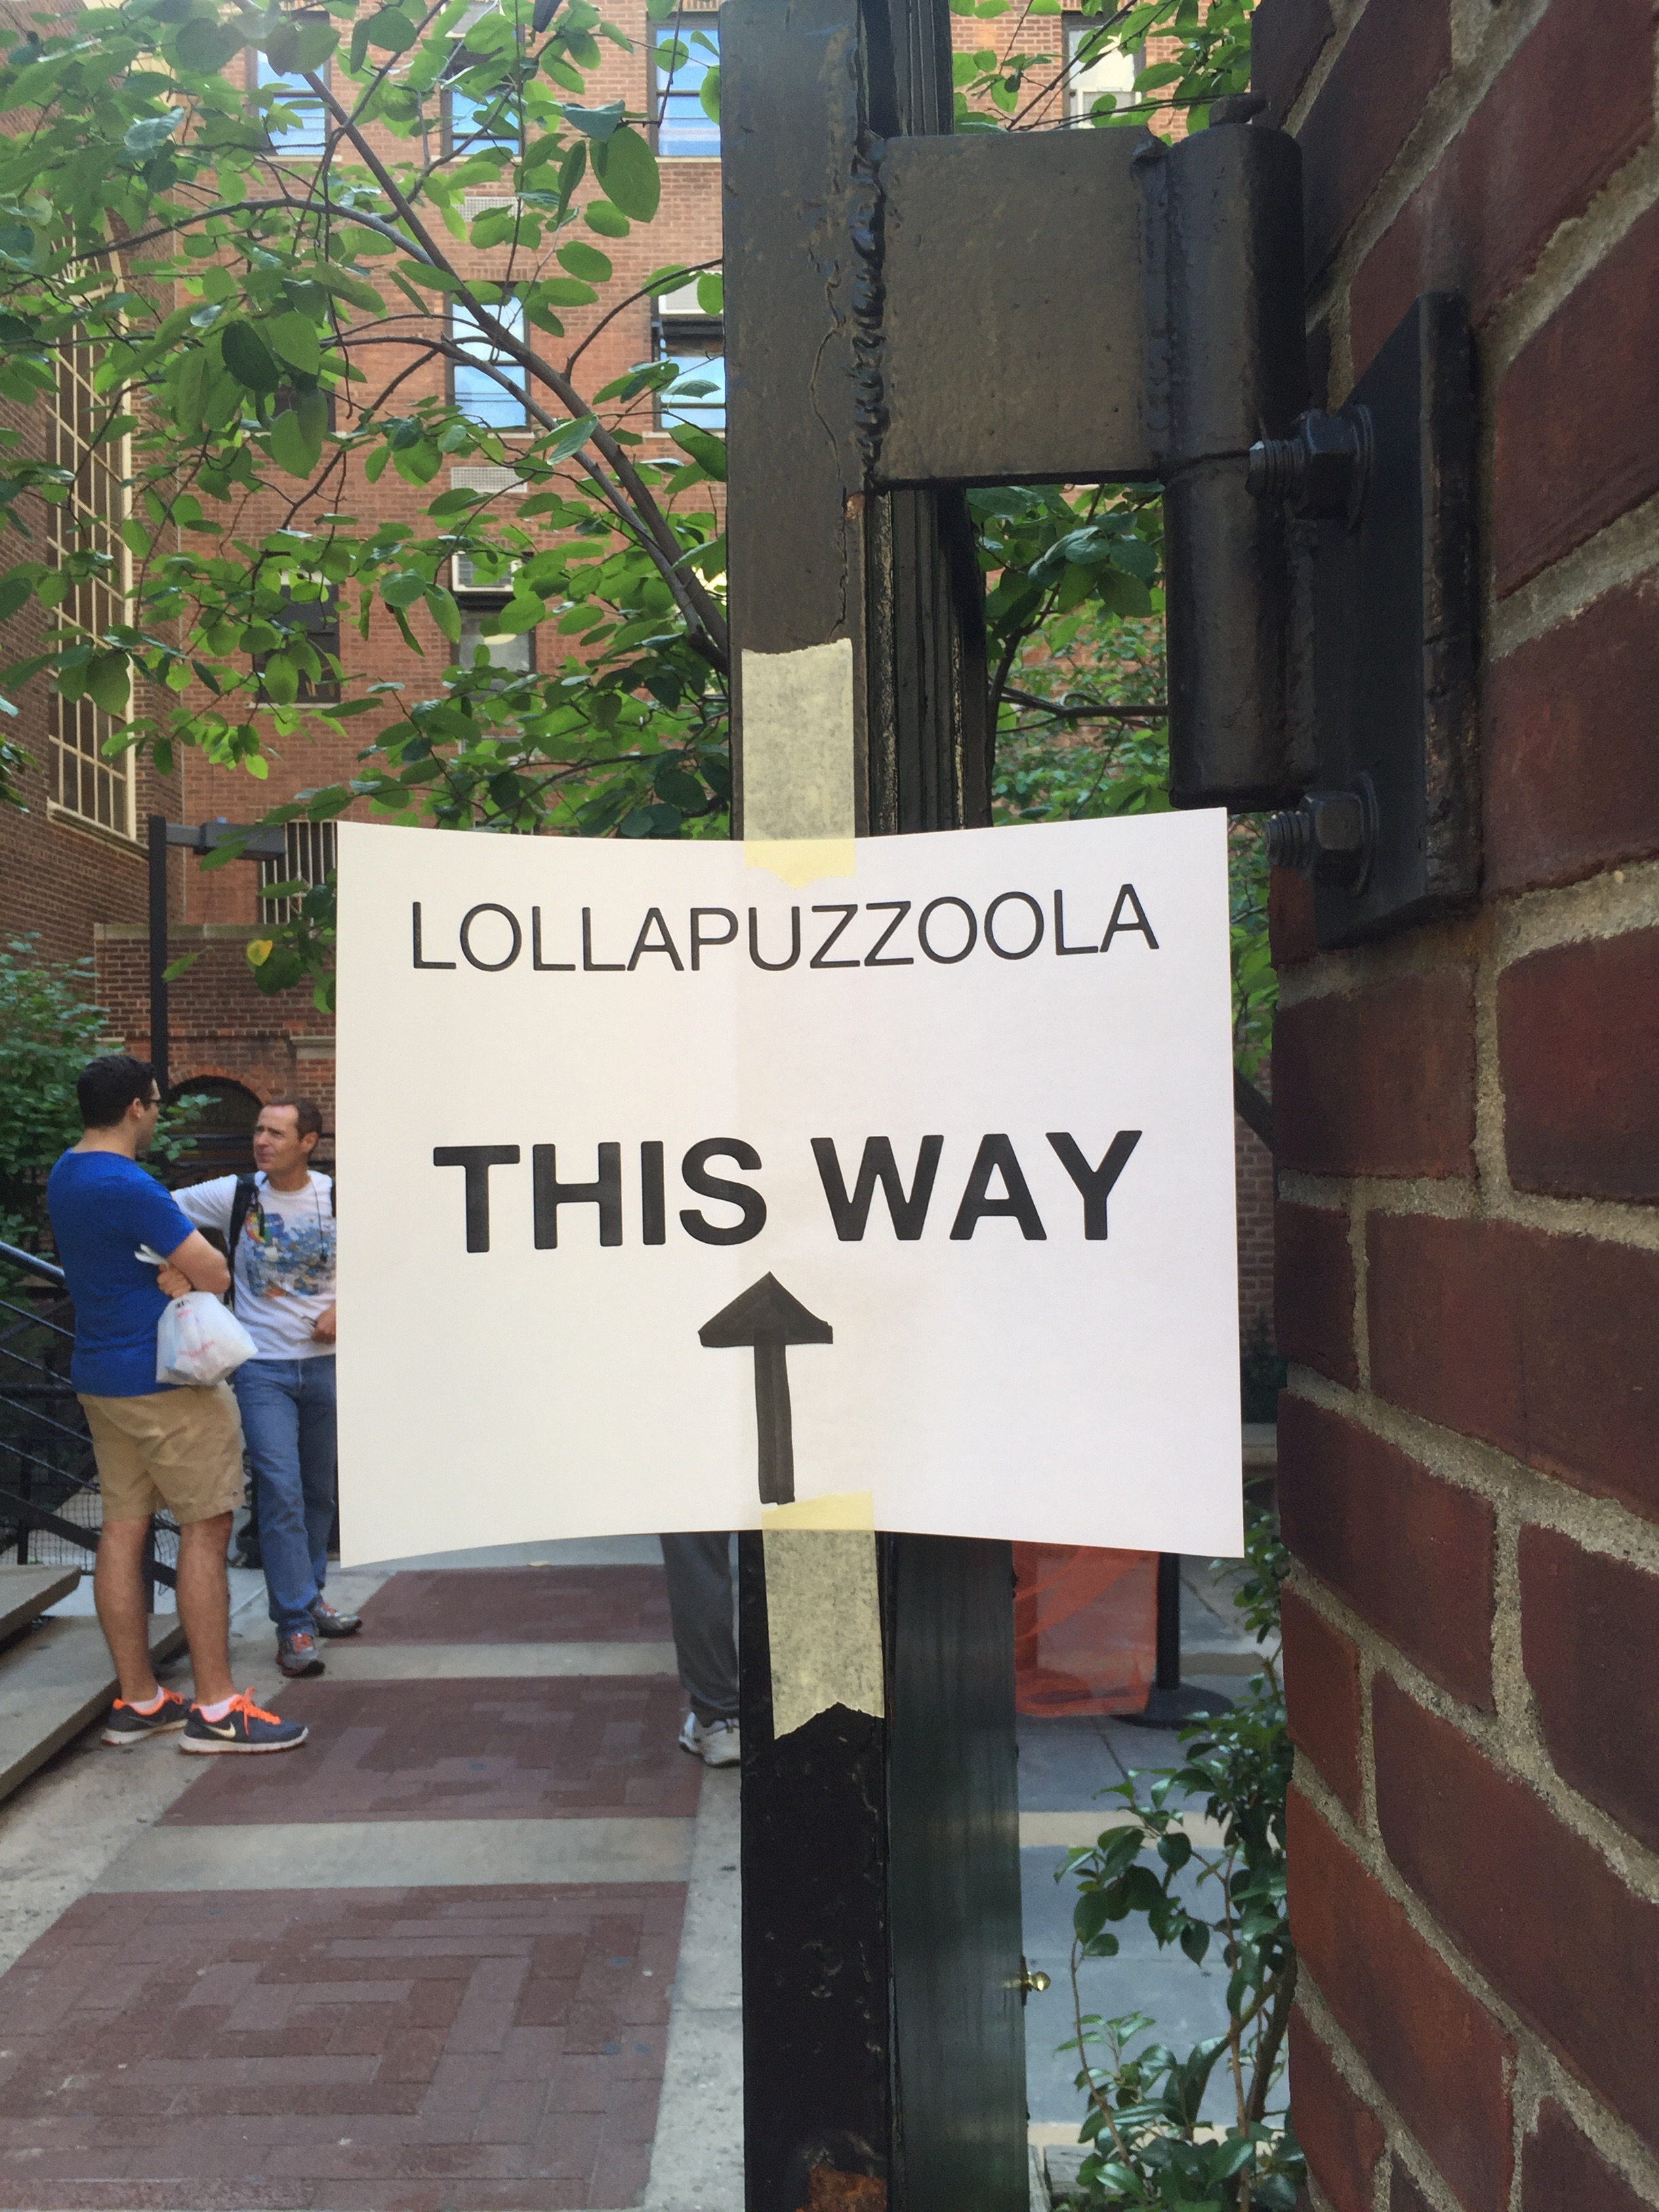 Lollapuzzoola 1 this way.jpg